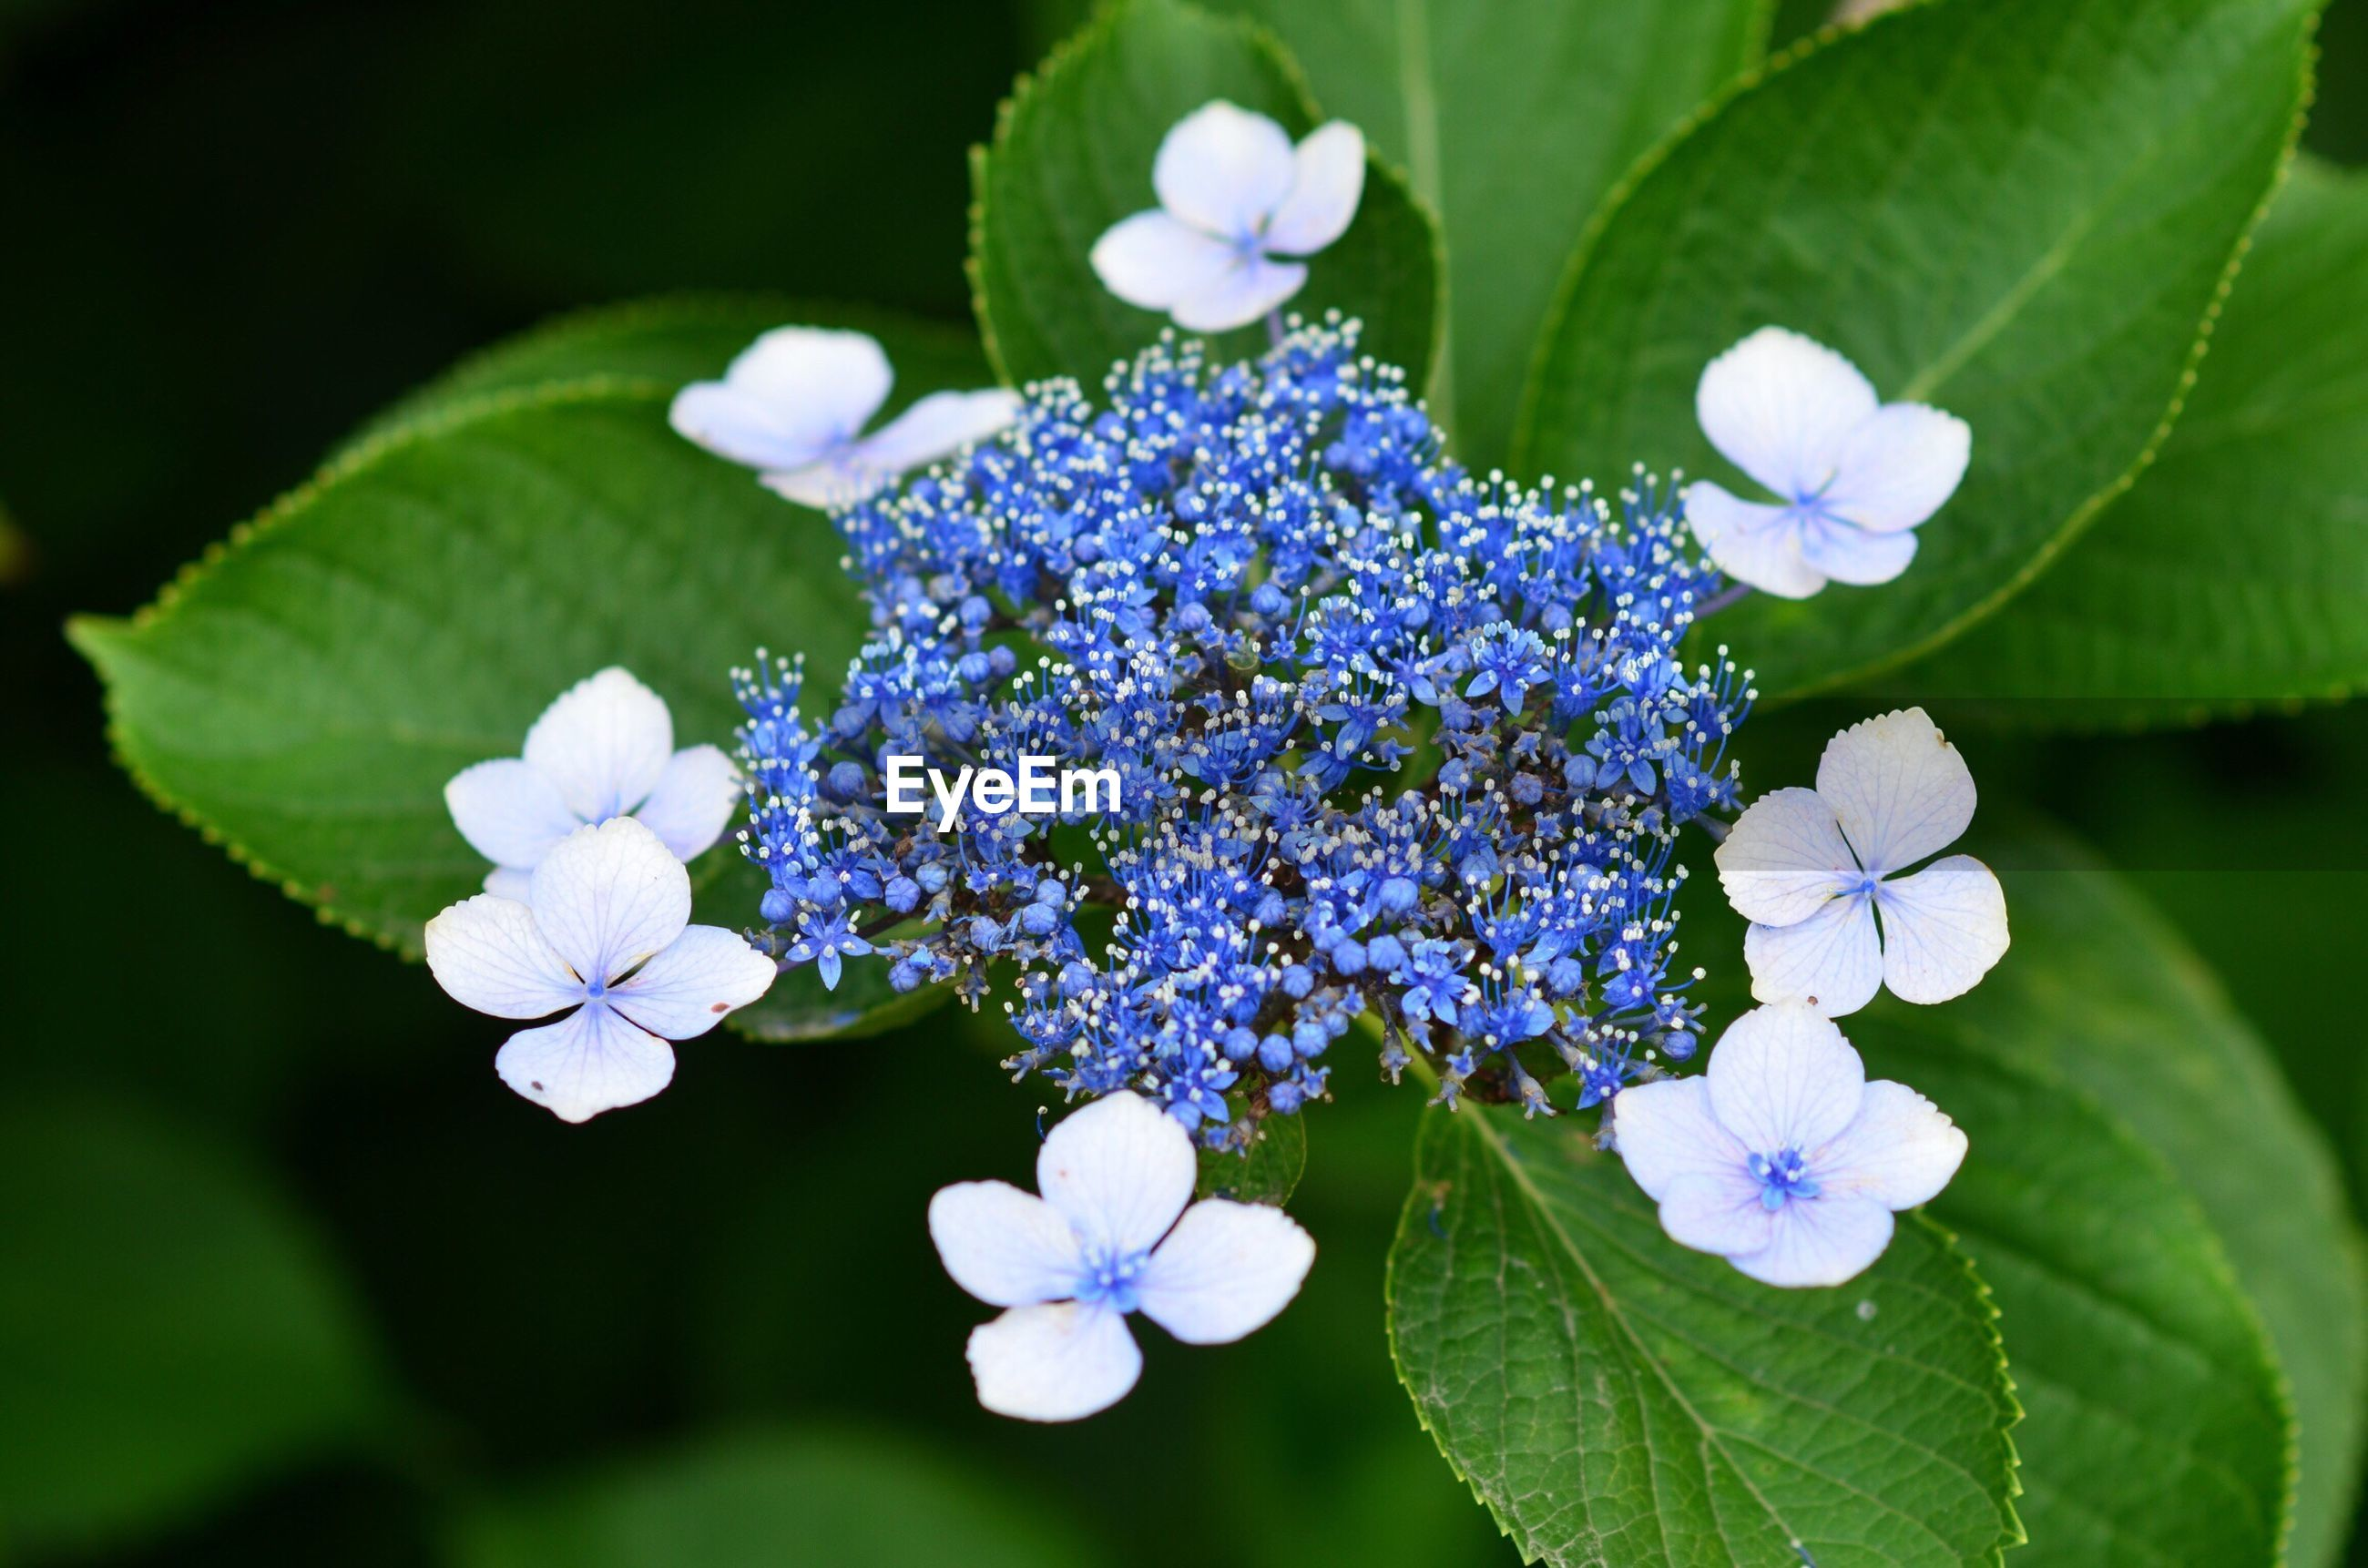 fragility, freshness, flower, purple, petal, growth, beauty in nature, blue, close-up, flower head, springtime, nature, in bloom, selective focus, plant, blossom, botany, day, blooming, green color, bloom, focus on foreground, hydrangea, flowering plant, no people, softness, growing